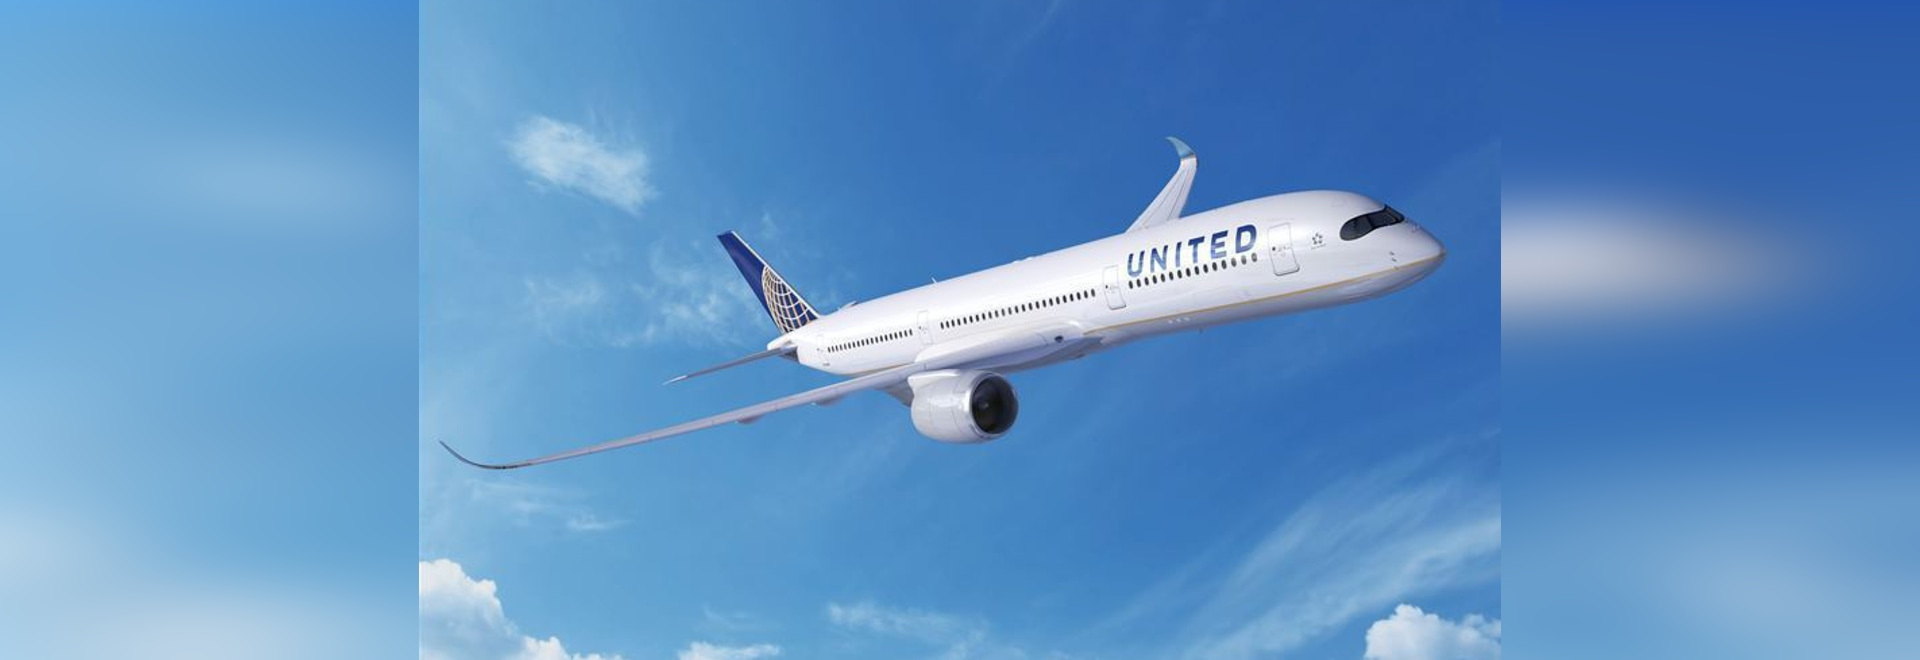 United Airlines and Airbus to manage data and predictive maintenance